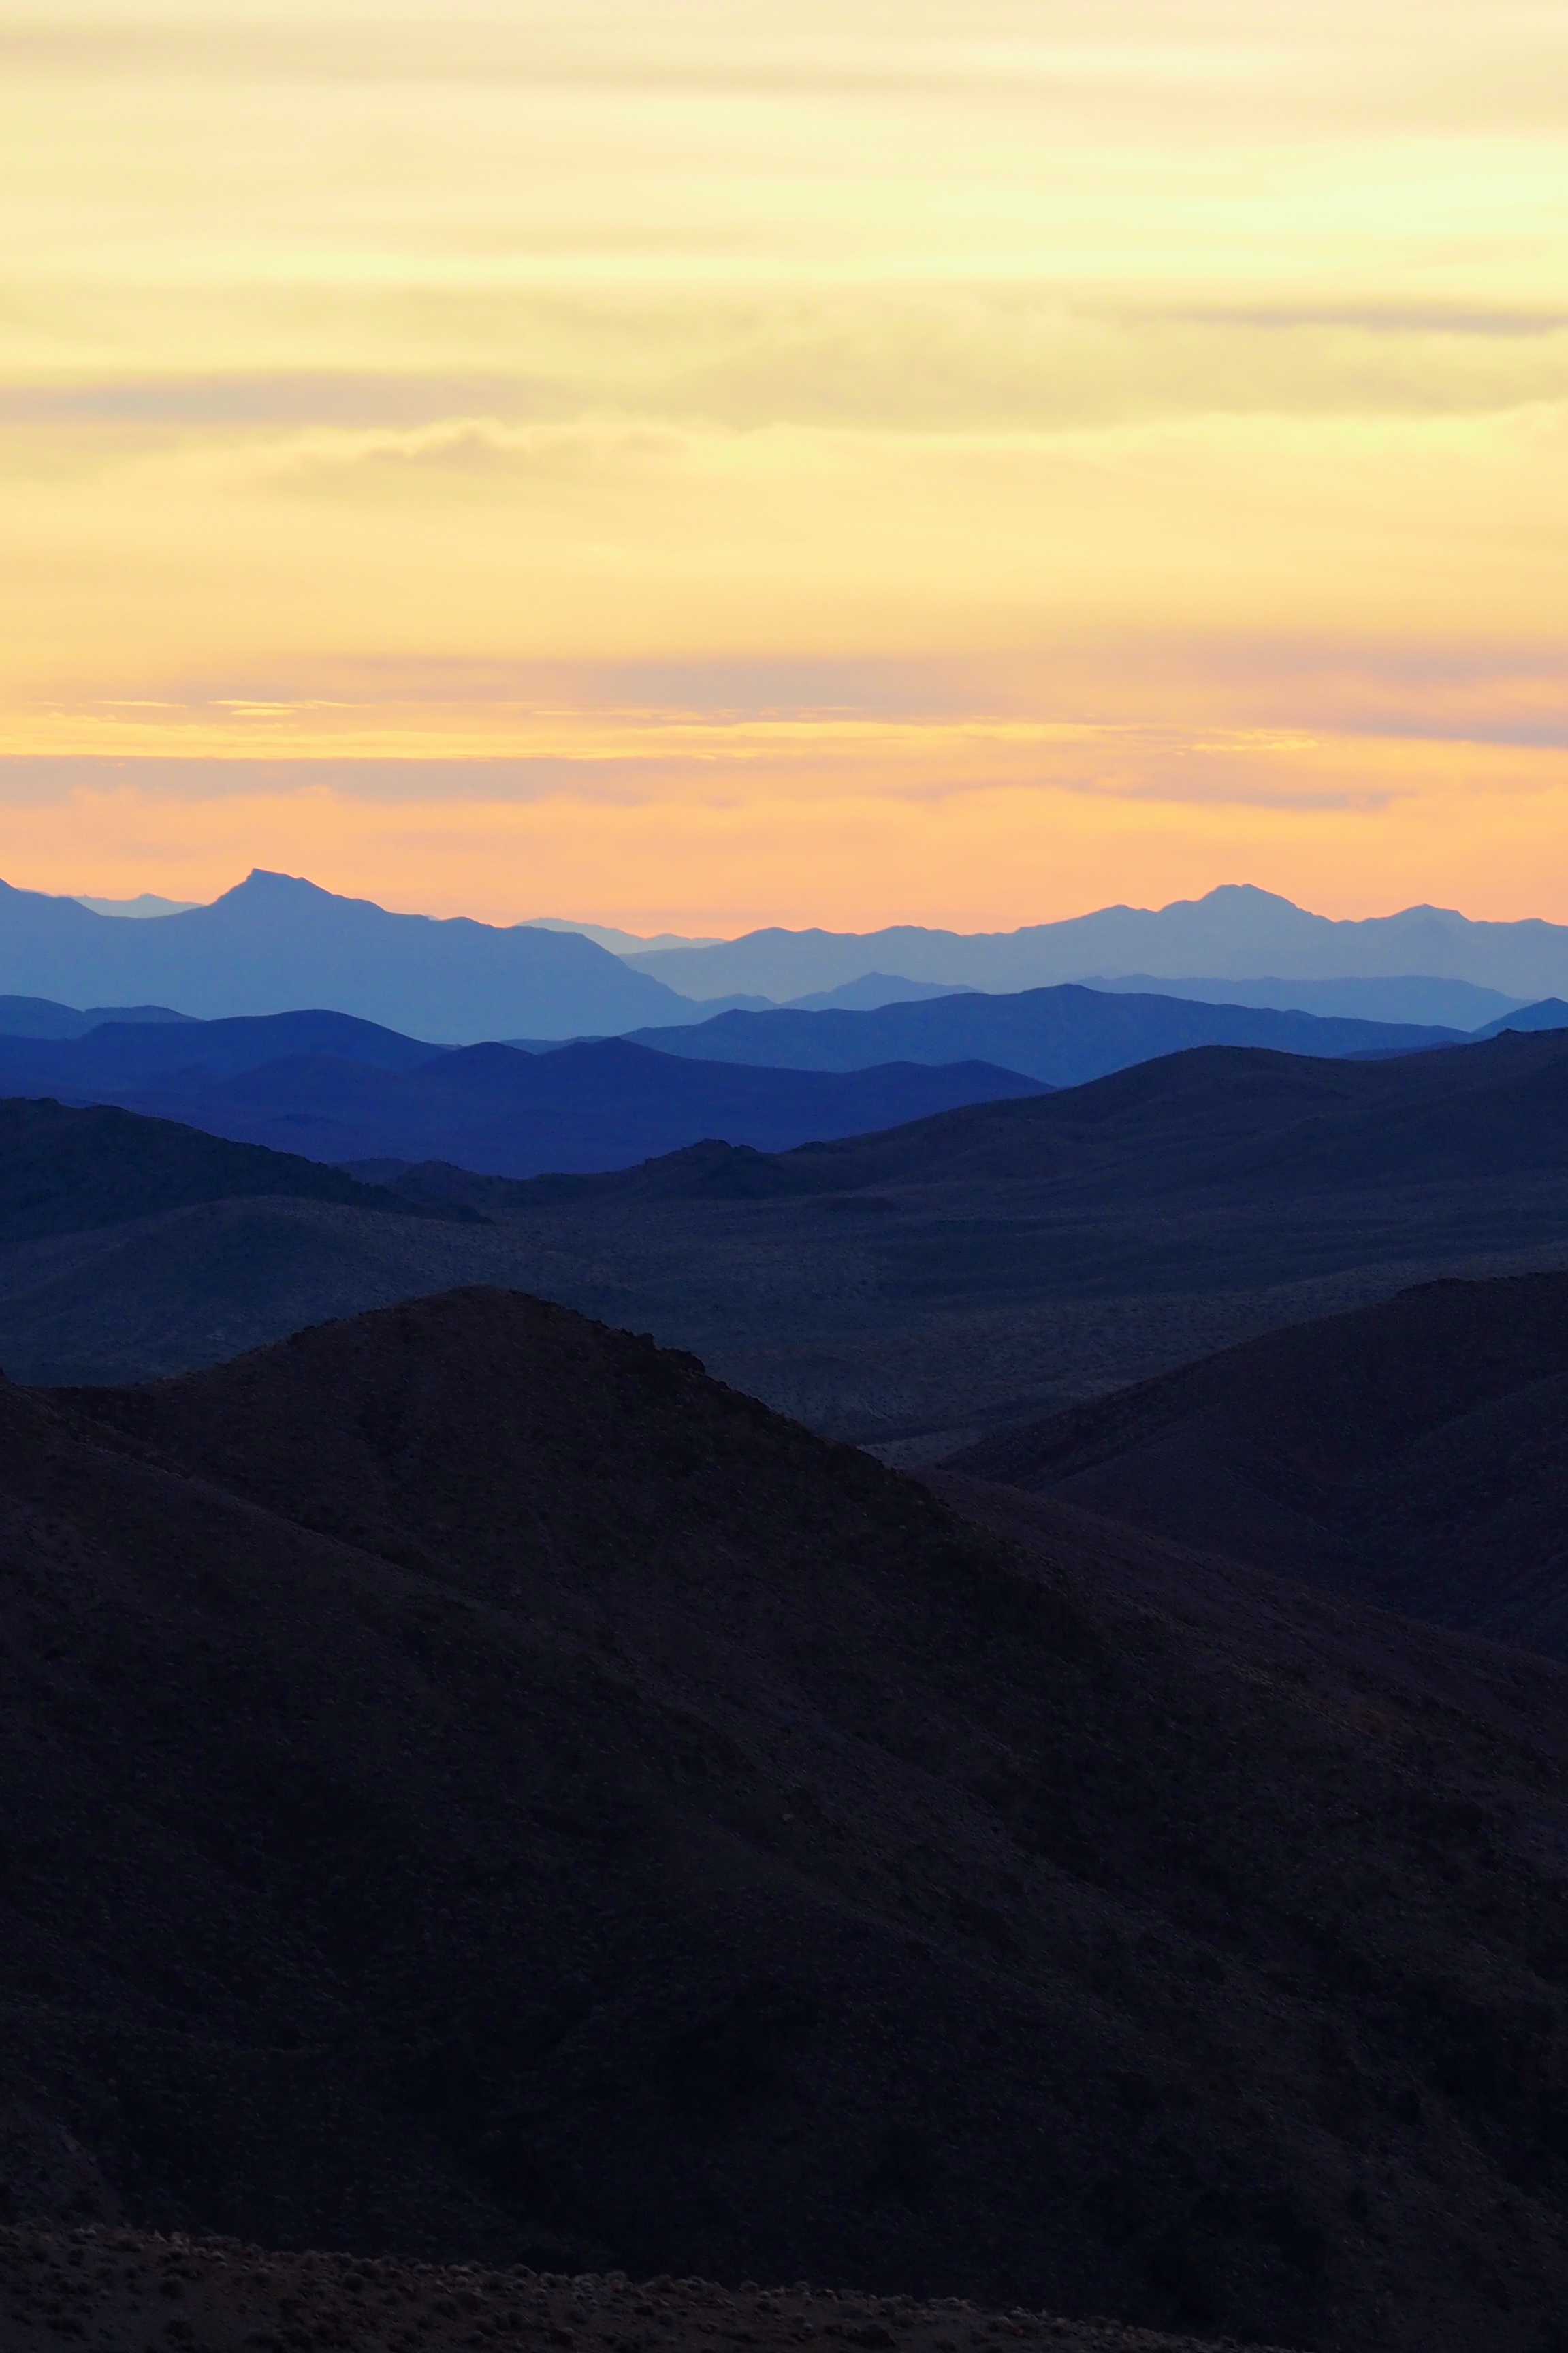 Dawn view from Dante's Peak, Death Valley, California